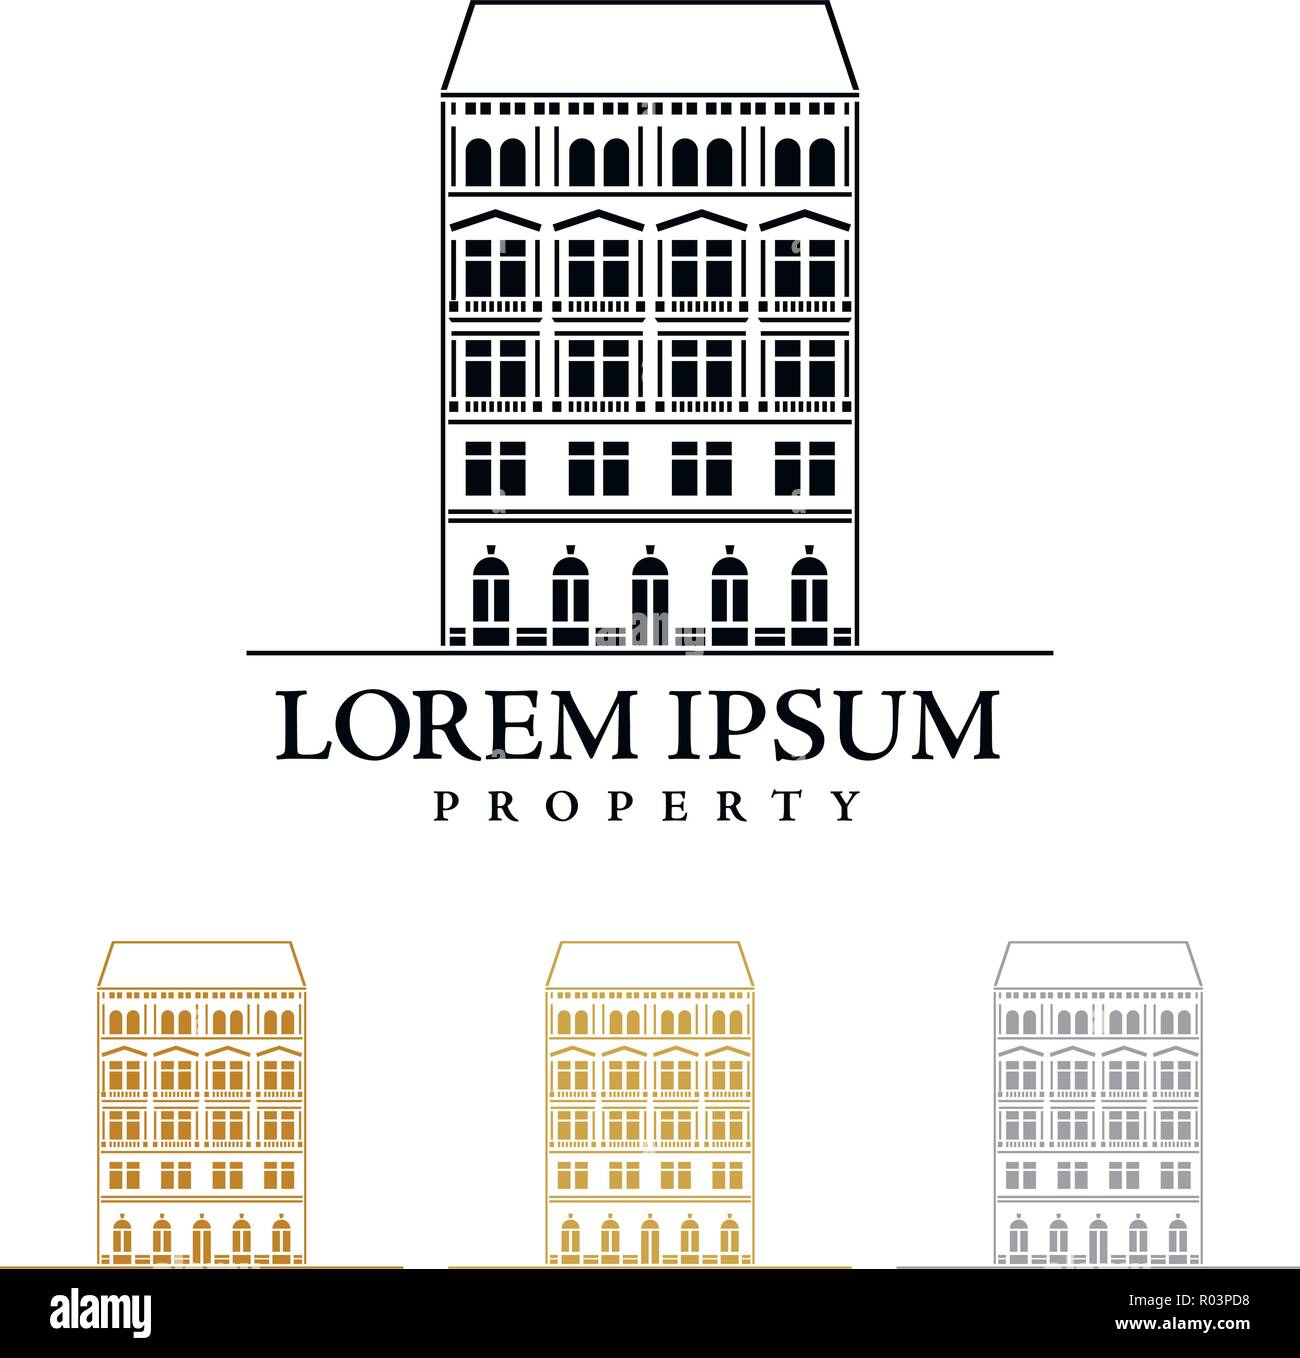 Property or real estate company vector logo template with imperial style house - Stock Vector